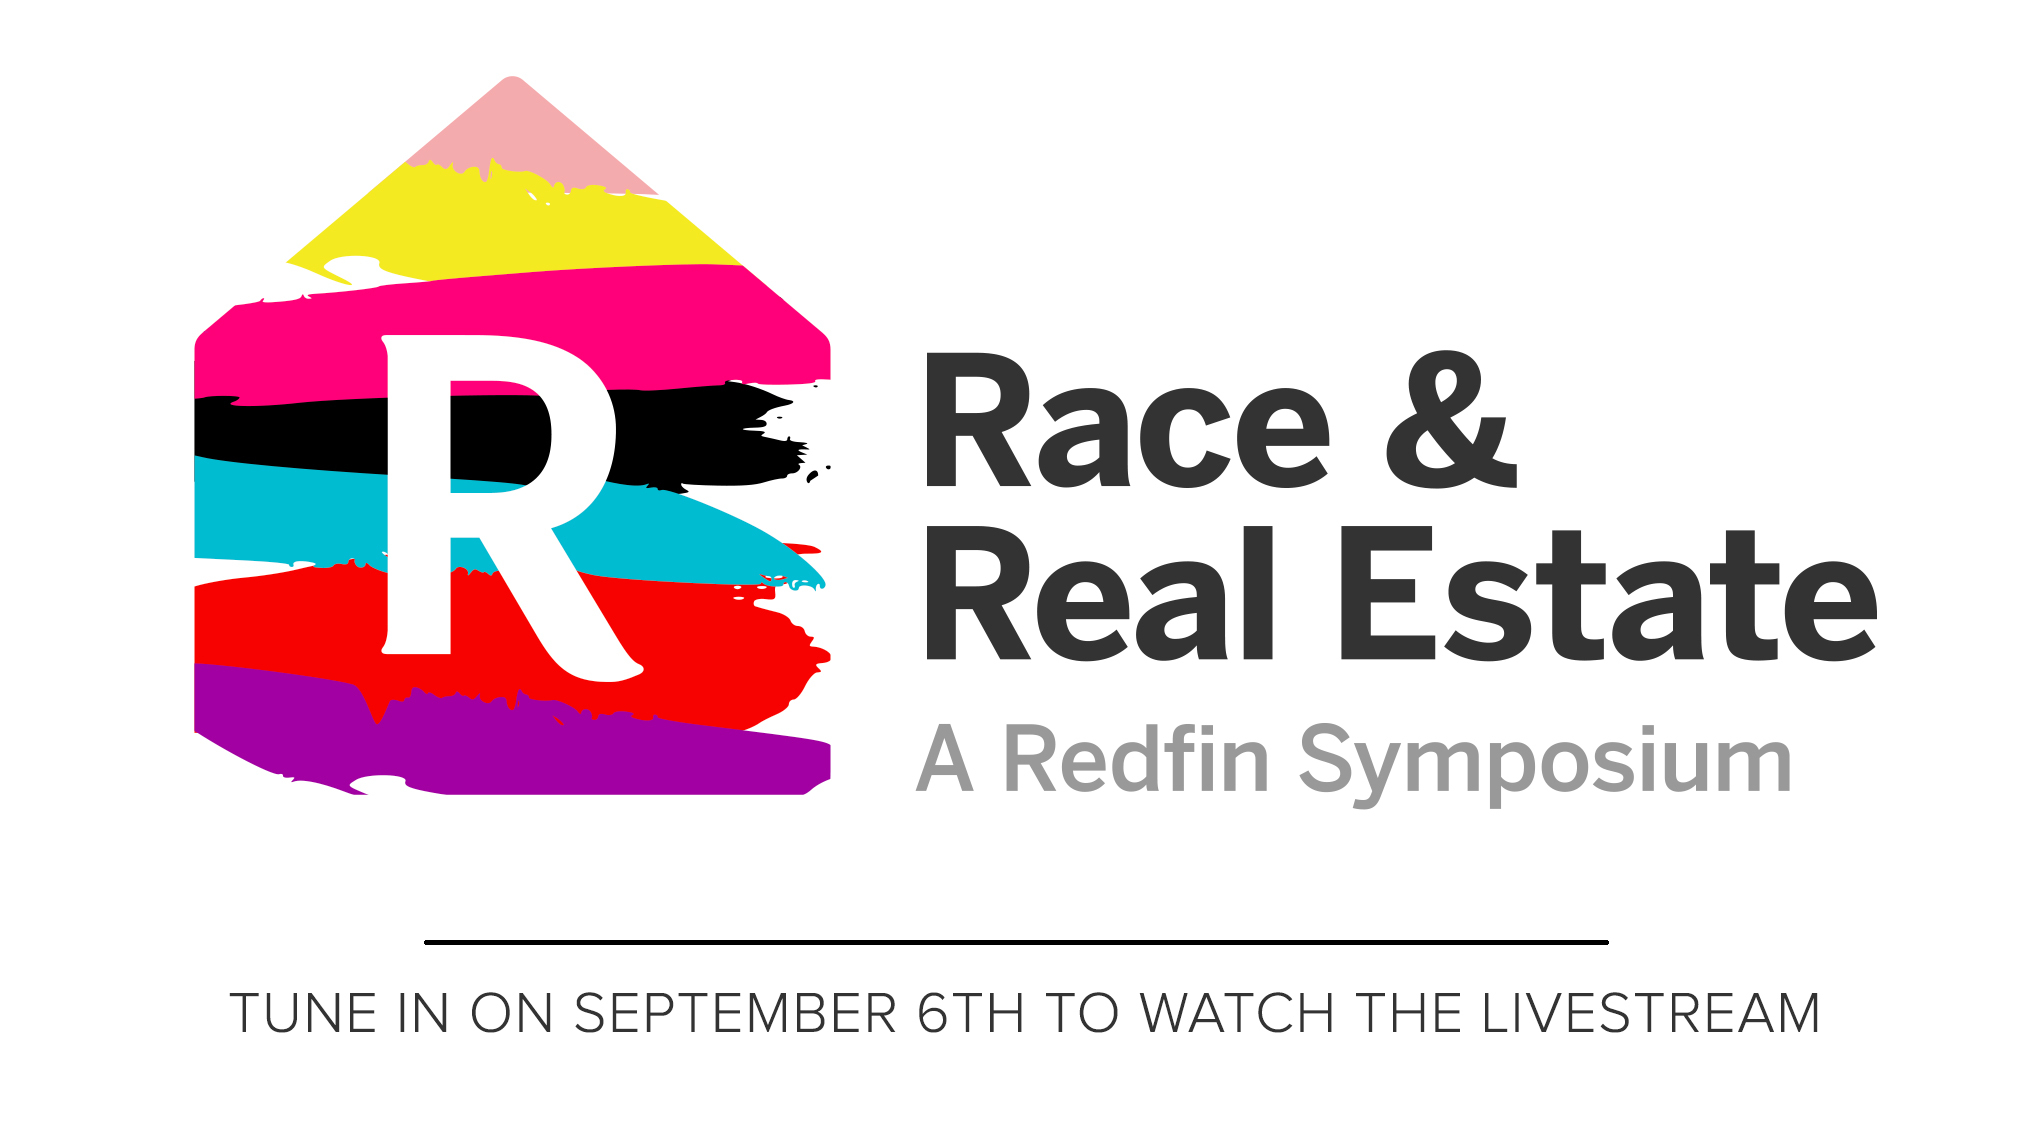 Exclusive Livestream: Redfin's Race & Real Estate Symposium